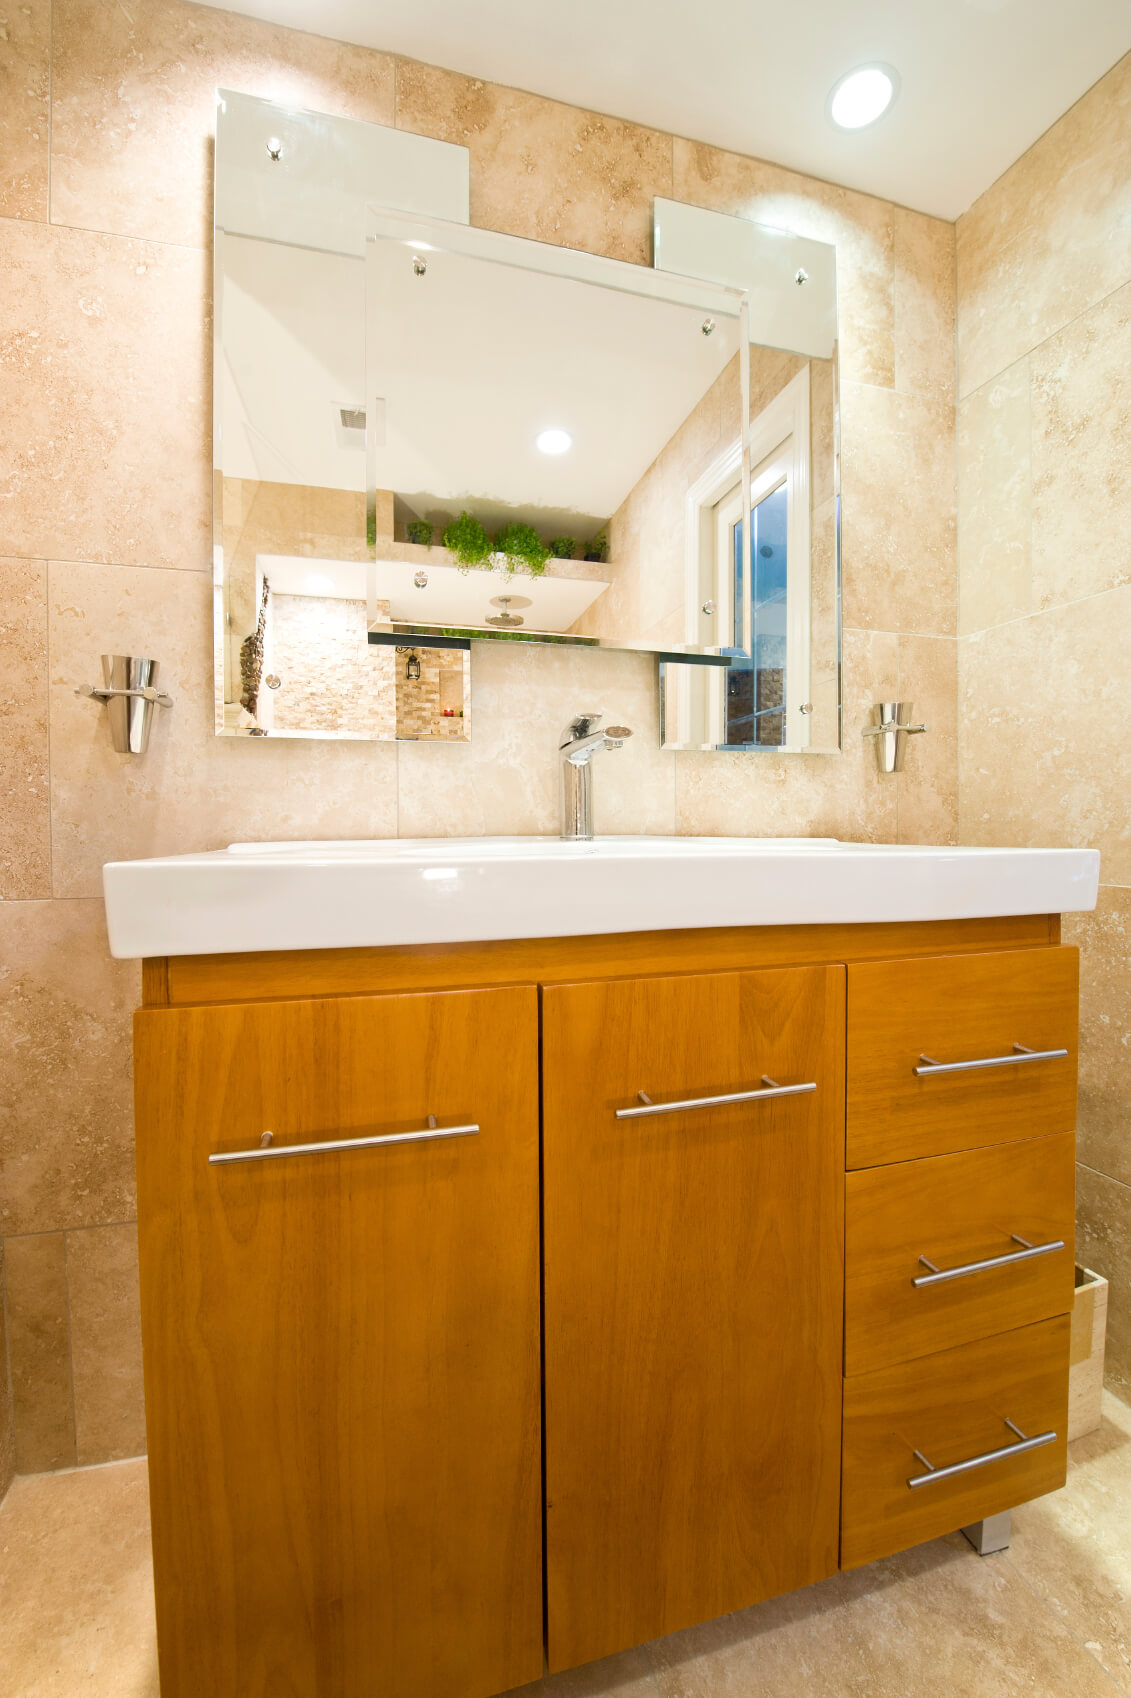 Designing your bathroom linen cabinets modernize for Bathroom linen cabinets